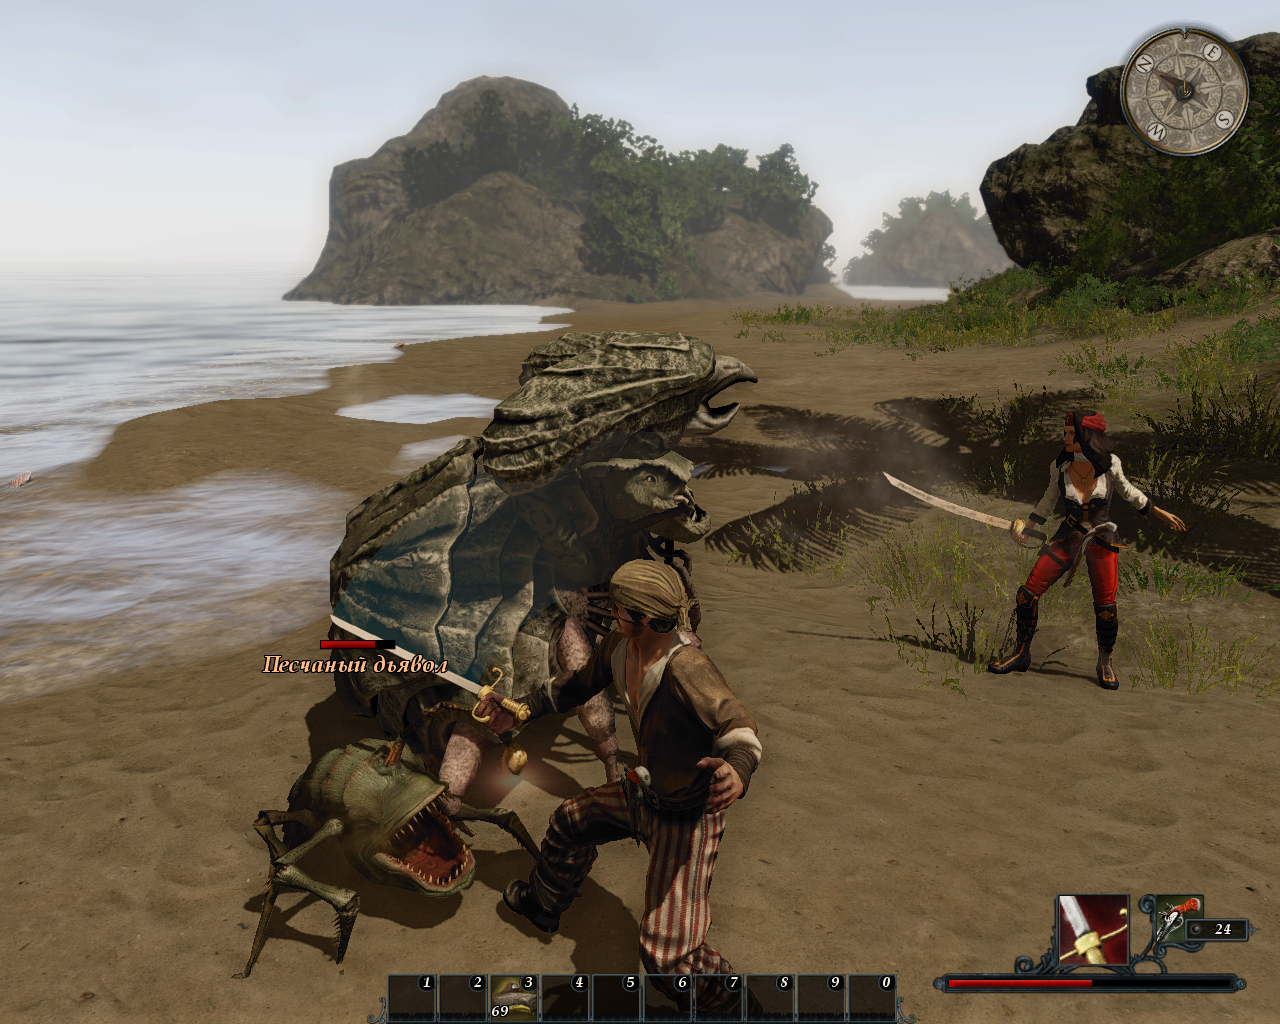 Risen 2: Dark Waters Windows 2 on 2 fight at the beach